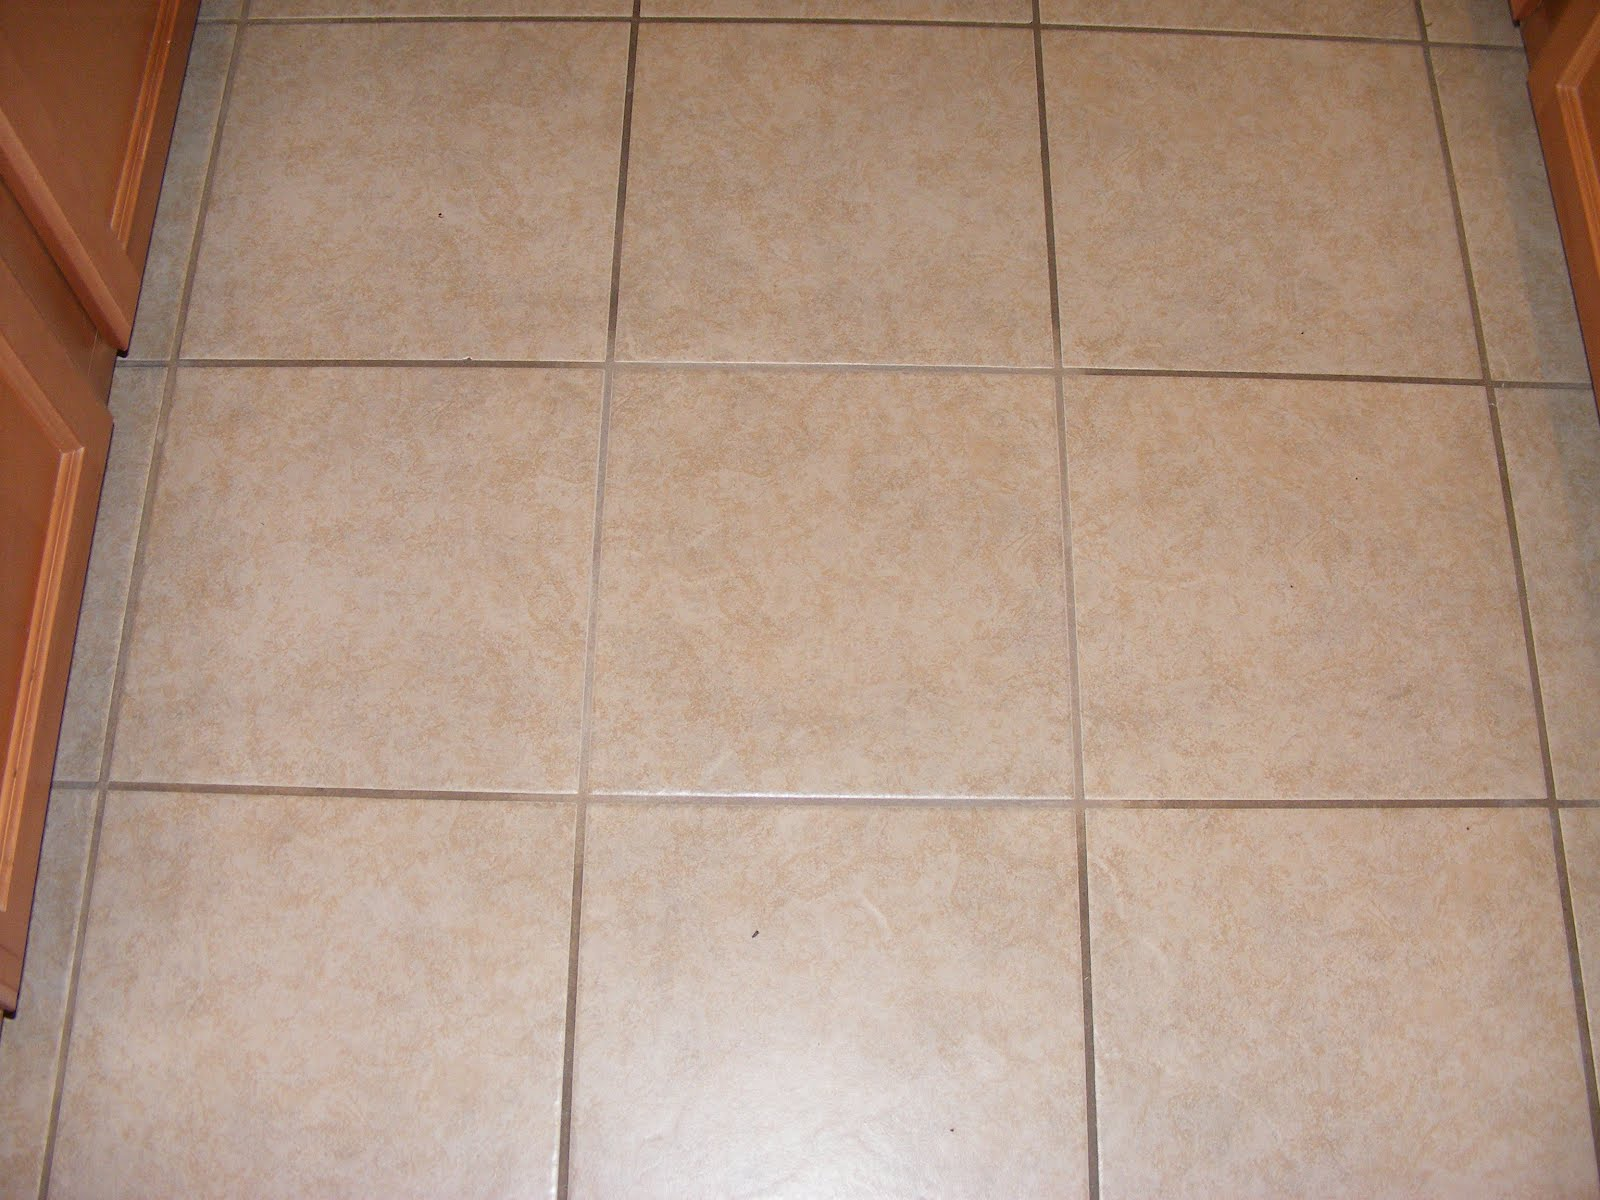 Amazing Grout Cleaner - Best method to clean tile grout